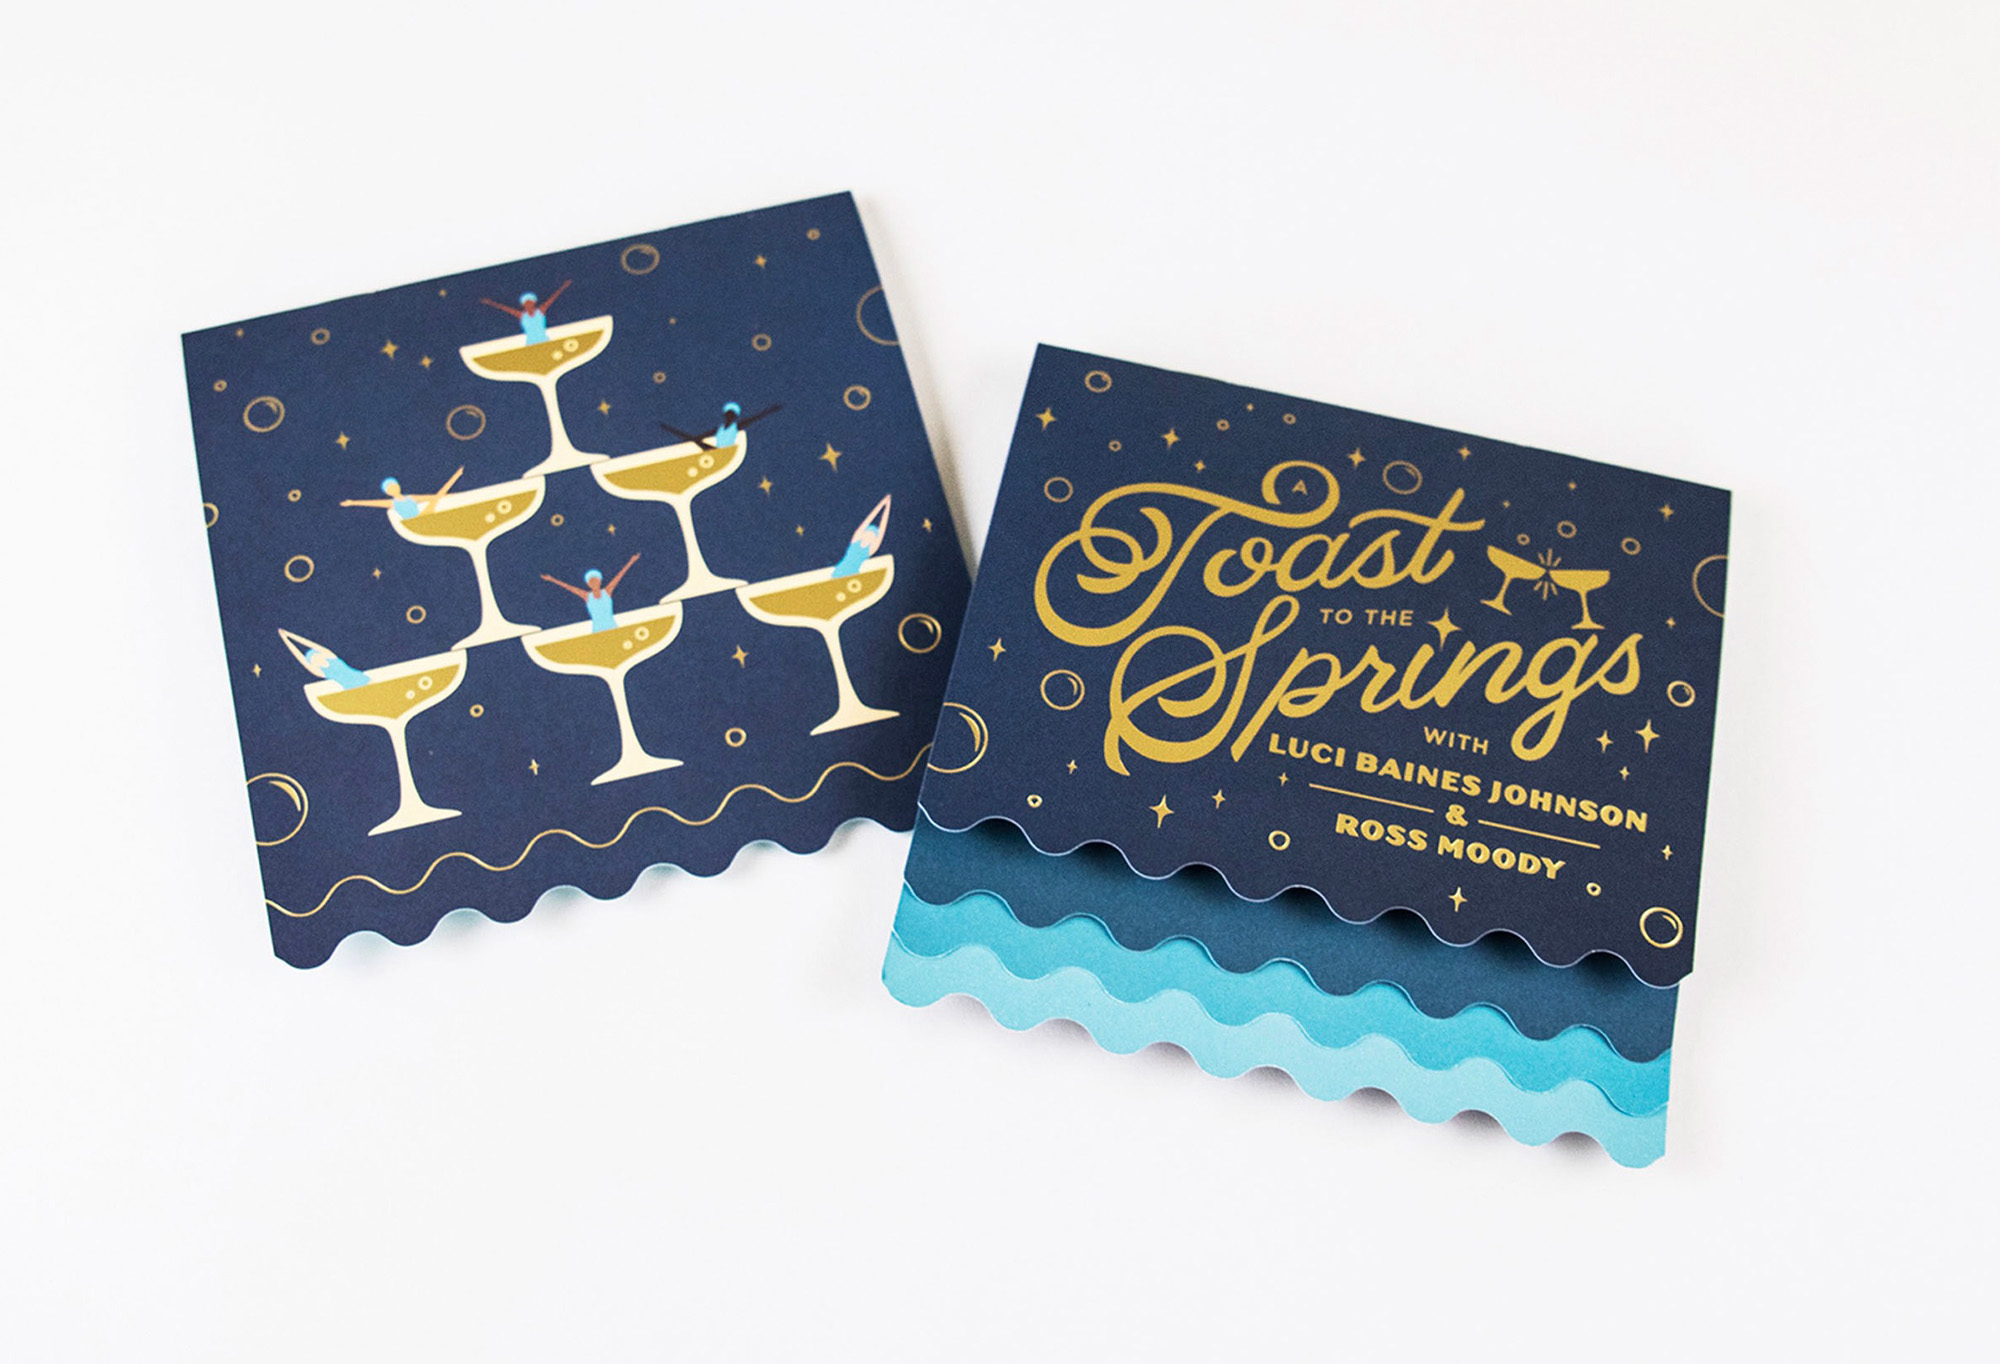 """The front and back of a fundraiser invitation with the name """"Toast to the Springs"""" and illustrations of synchronized swimmers in glasses of champagne."""